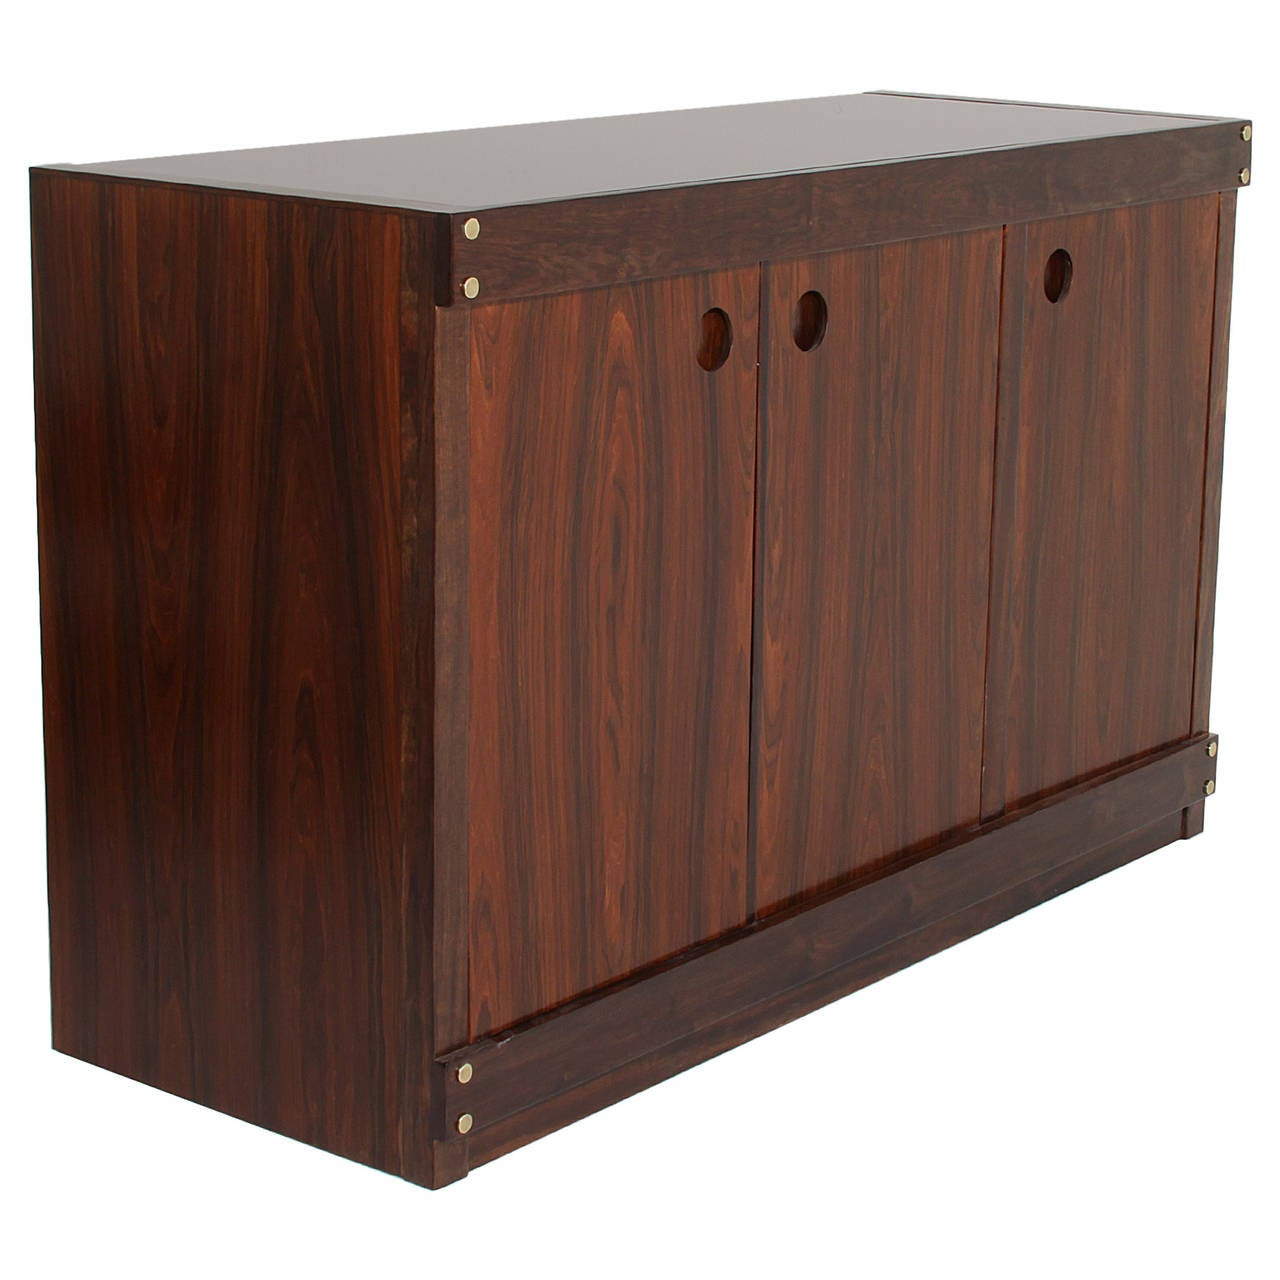 Rosewood With Brass Details And Glass-Top Cabinet Credenza